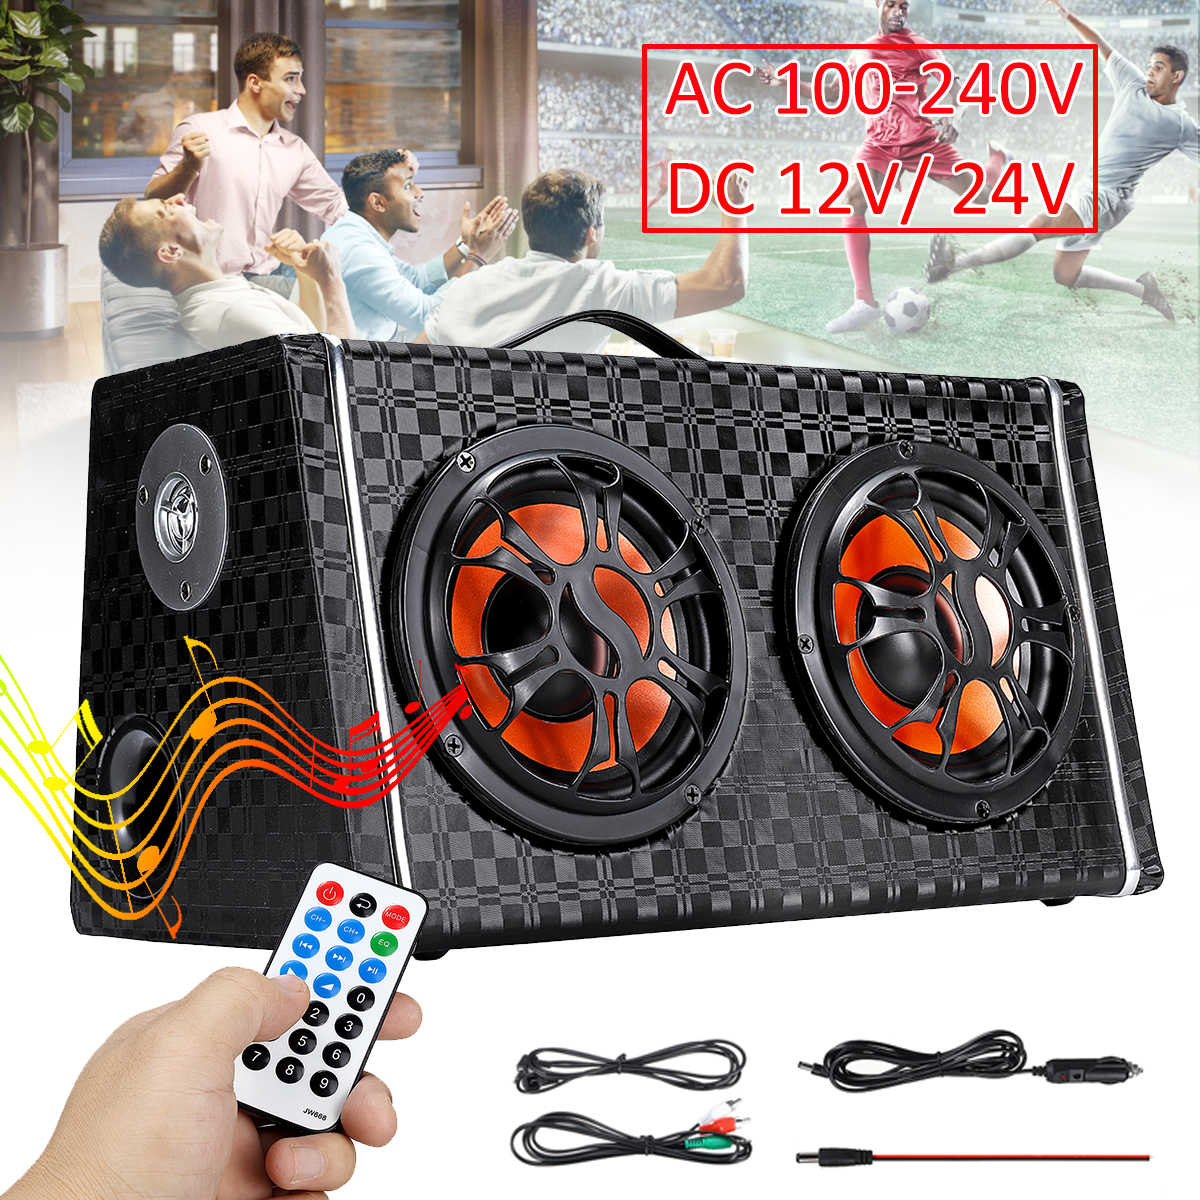 6 inch  DC 12V / 24V Wireless bluetooth Car Subwoofer Speaker Amplifier AC 100-240V Home Audio FM Radio Stereo Player Speakers